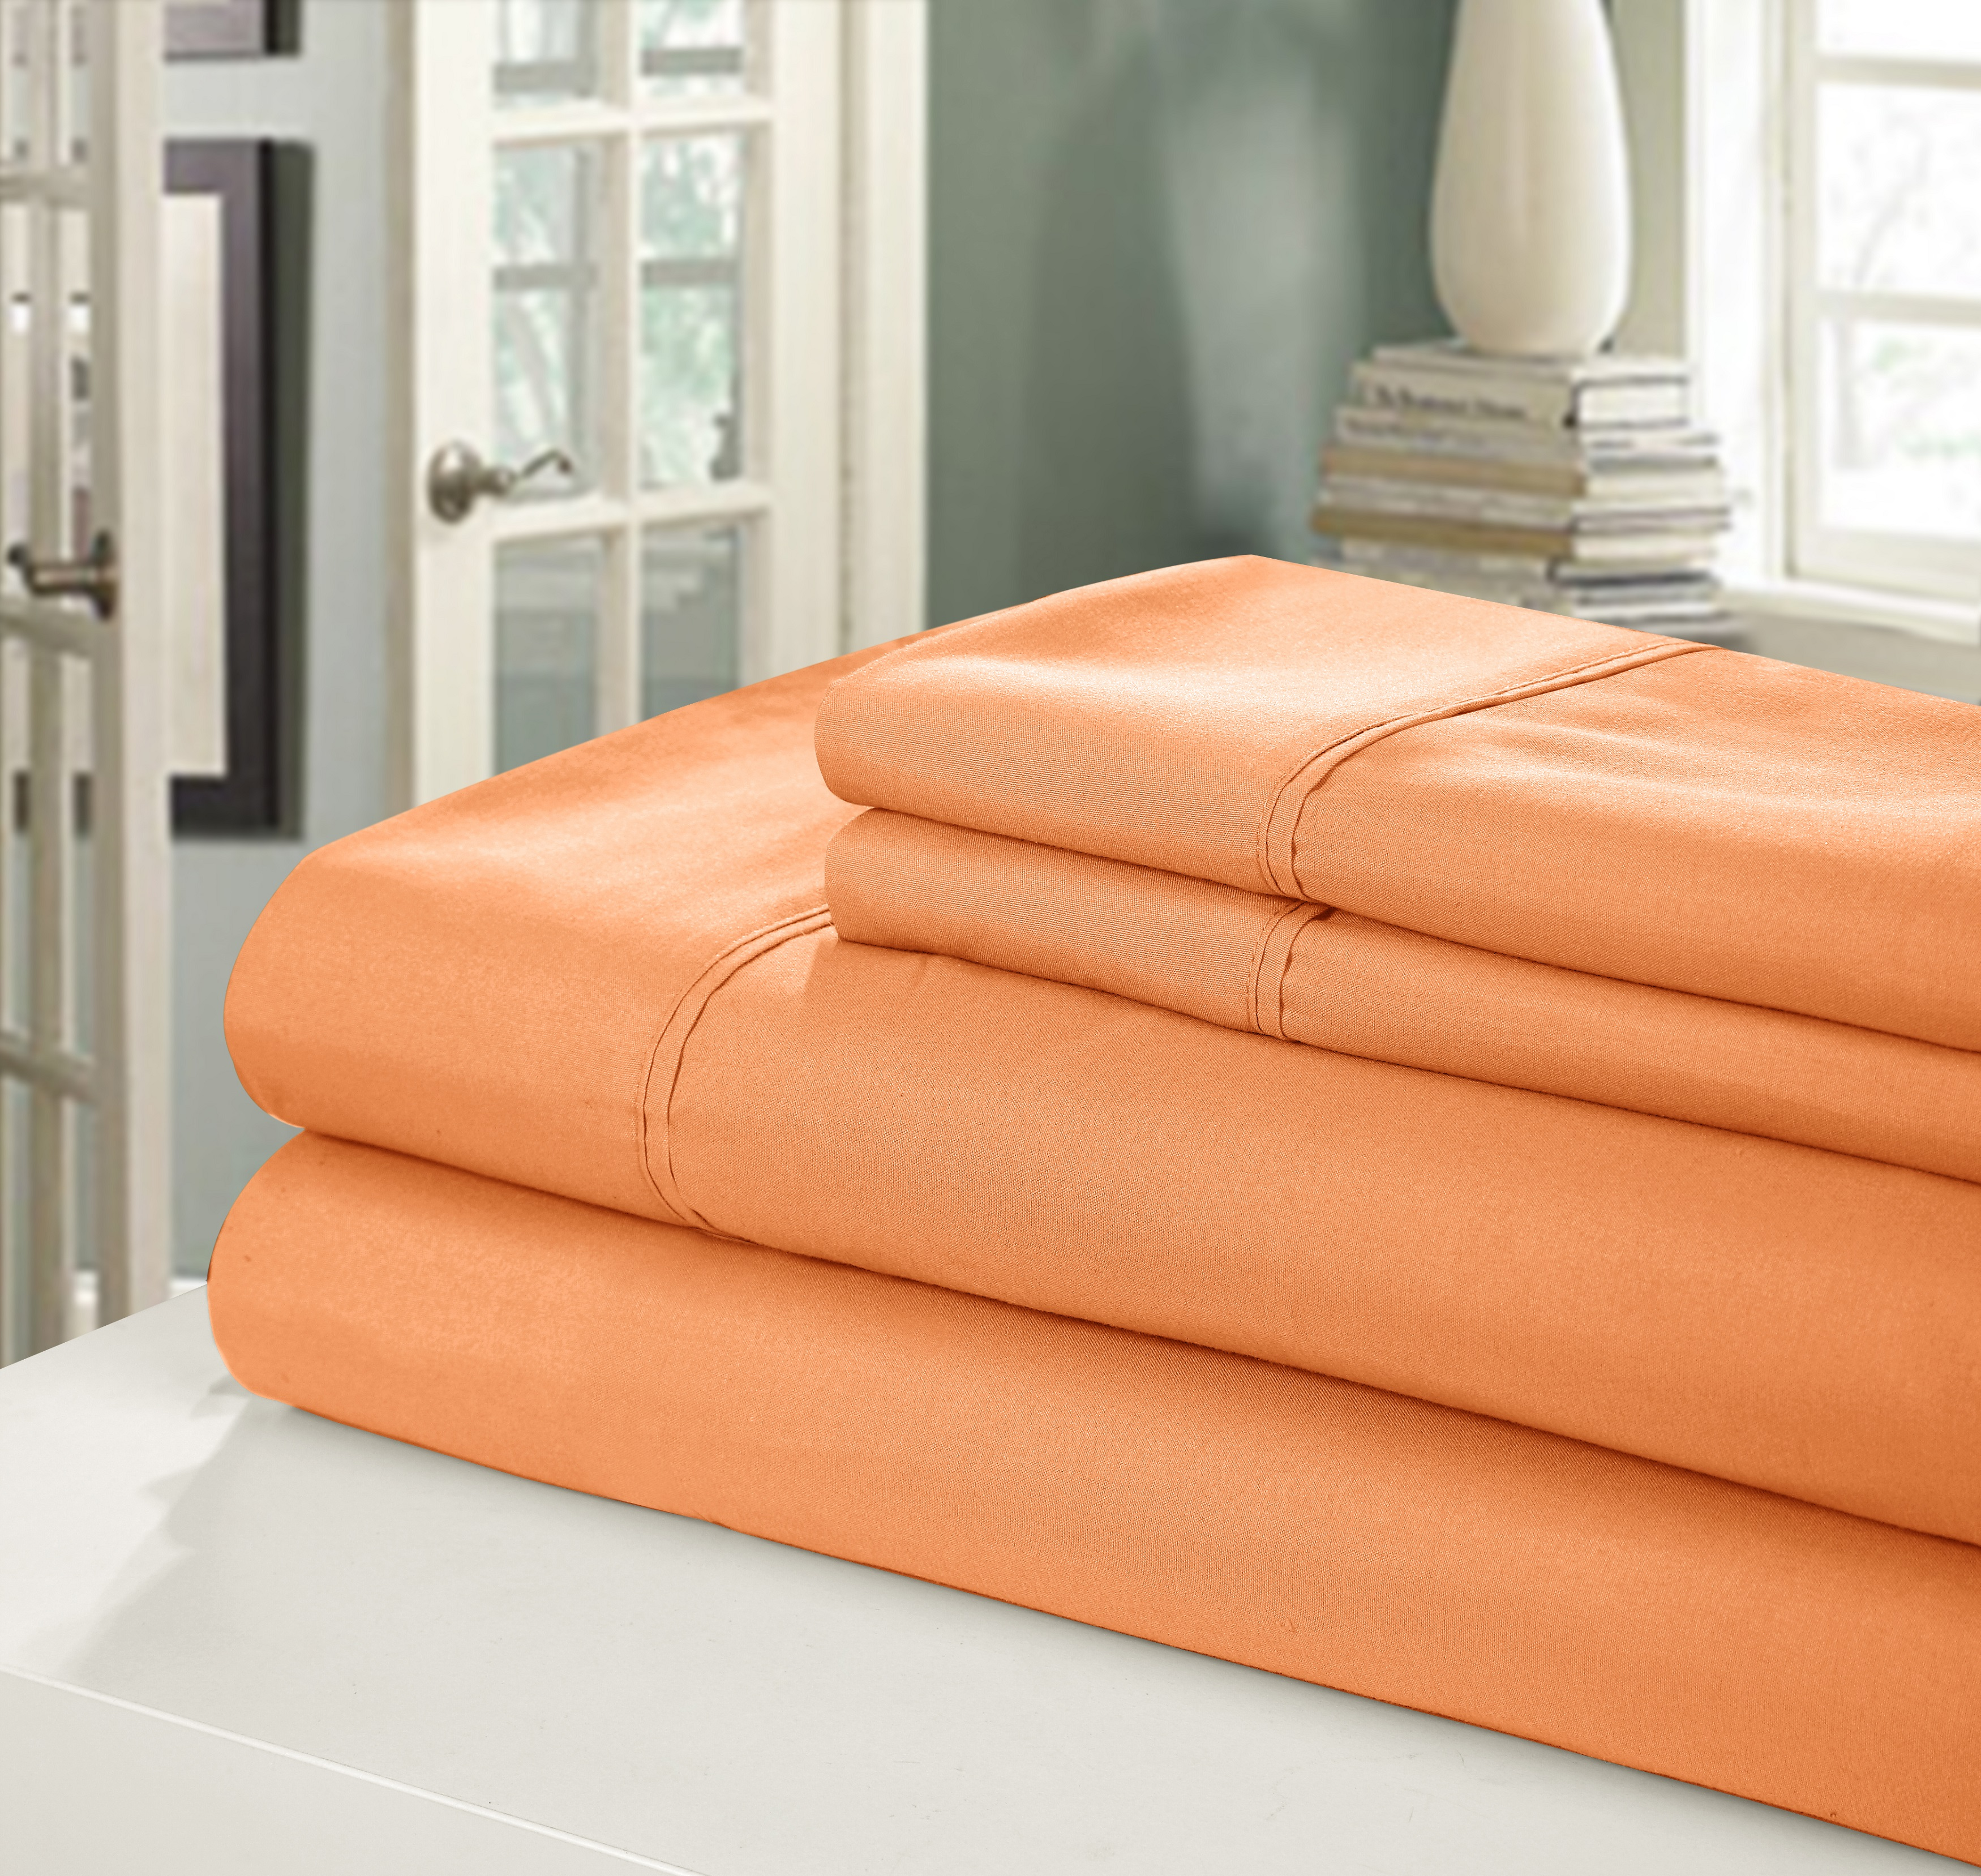 Chic Home NEW!! Chic Home 400 Series Peach Skin Microfiber 4-Piece Sheet Set Ensemble, Queen, Orange